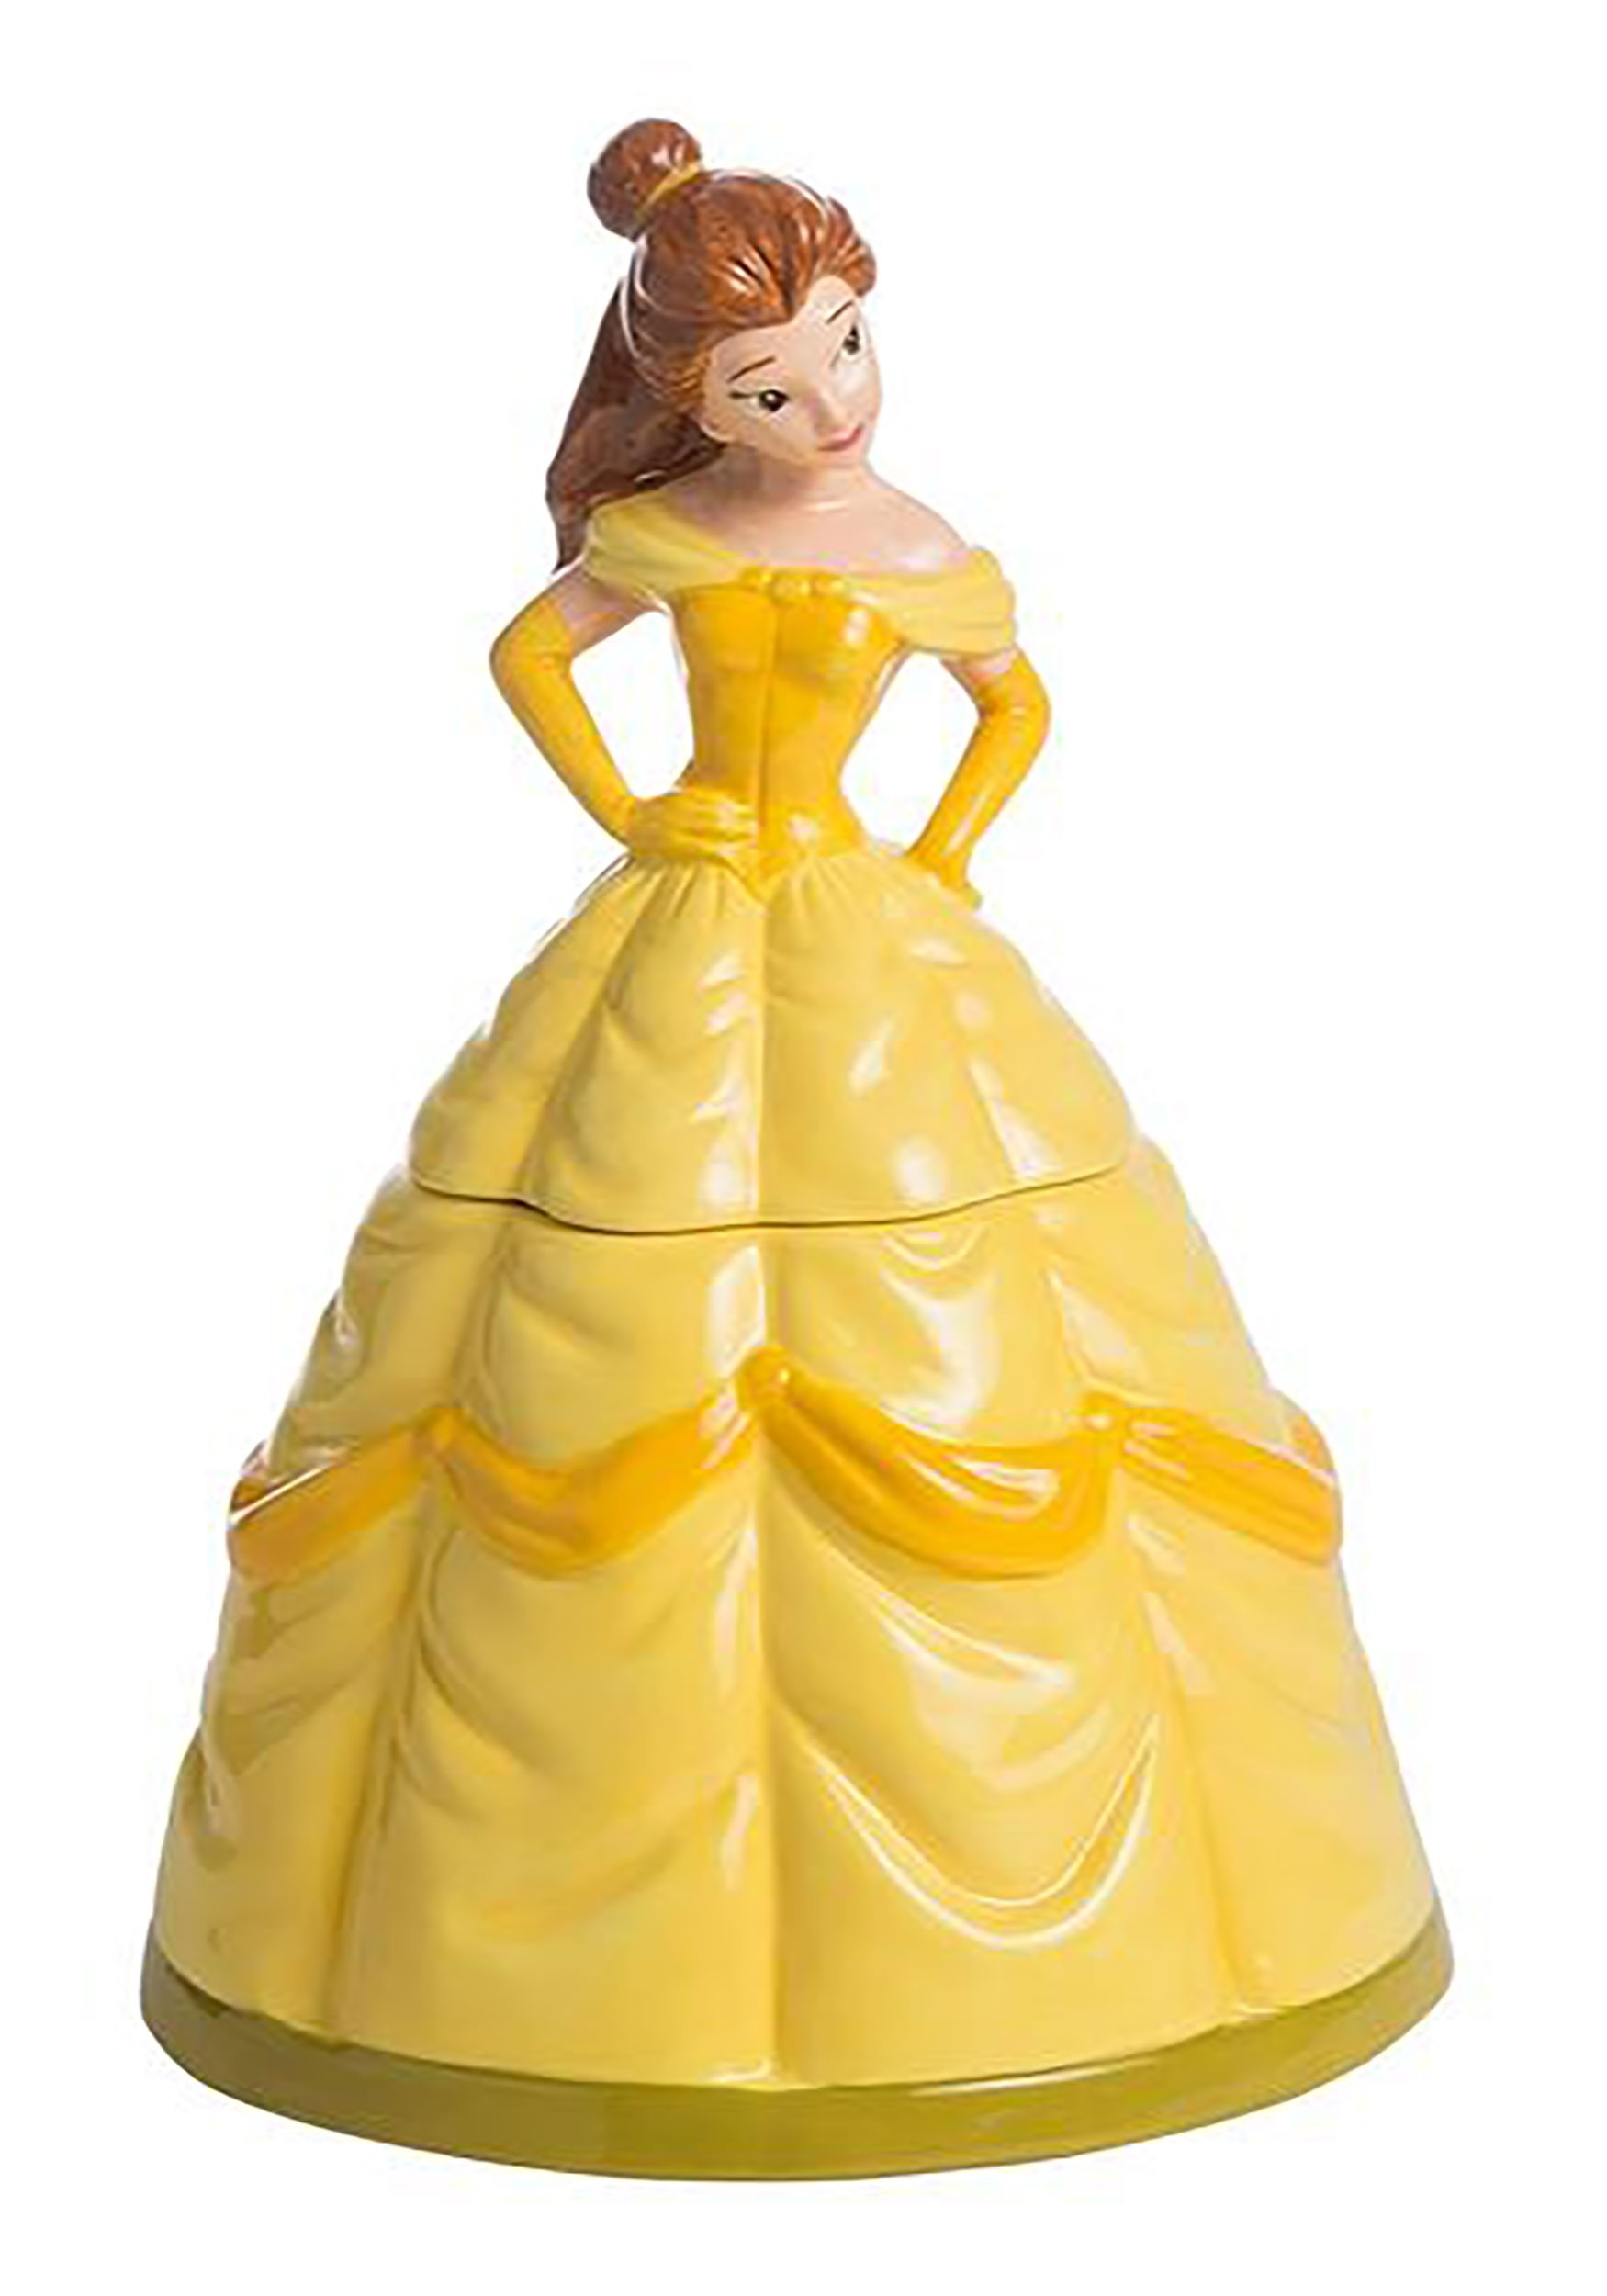 The Beauty & the Beast Belle Cookie Jar